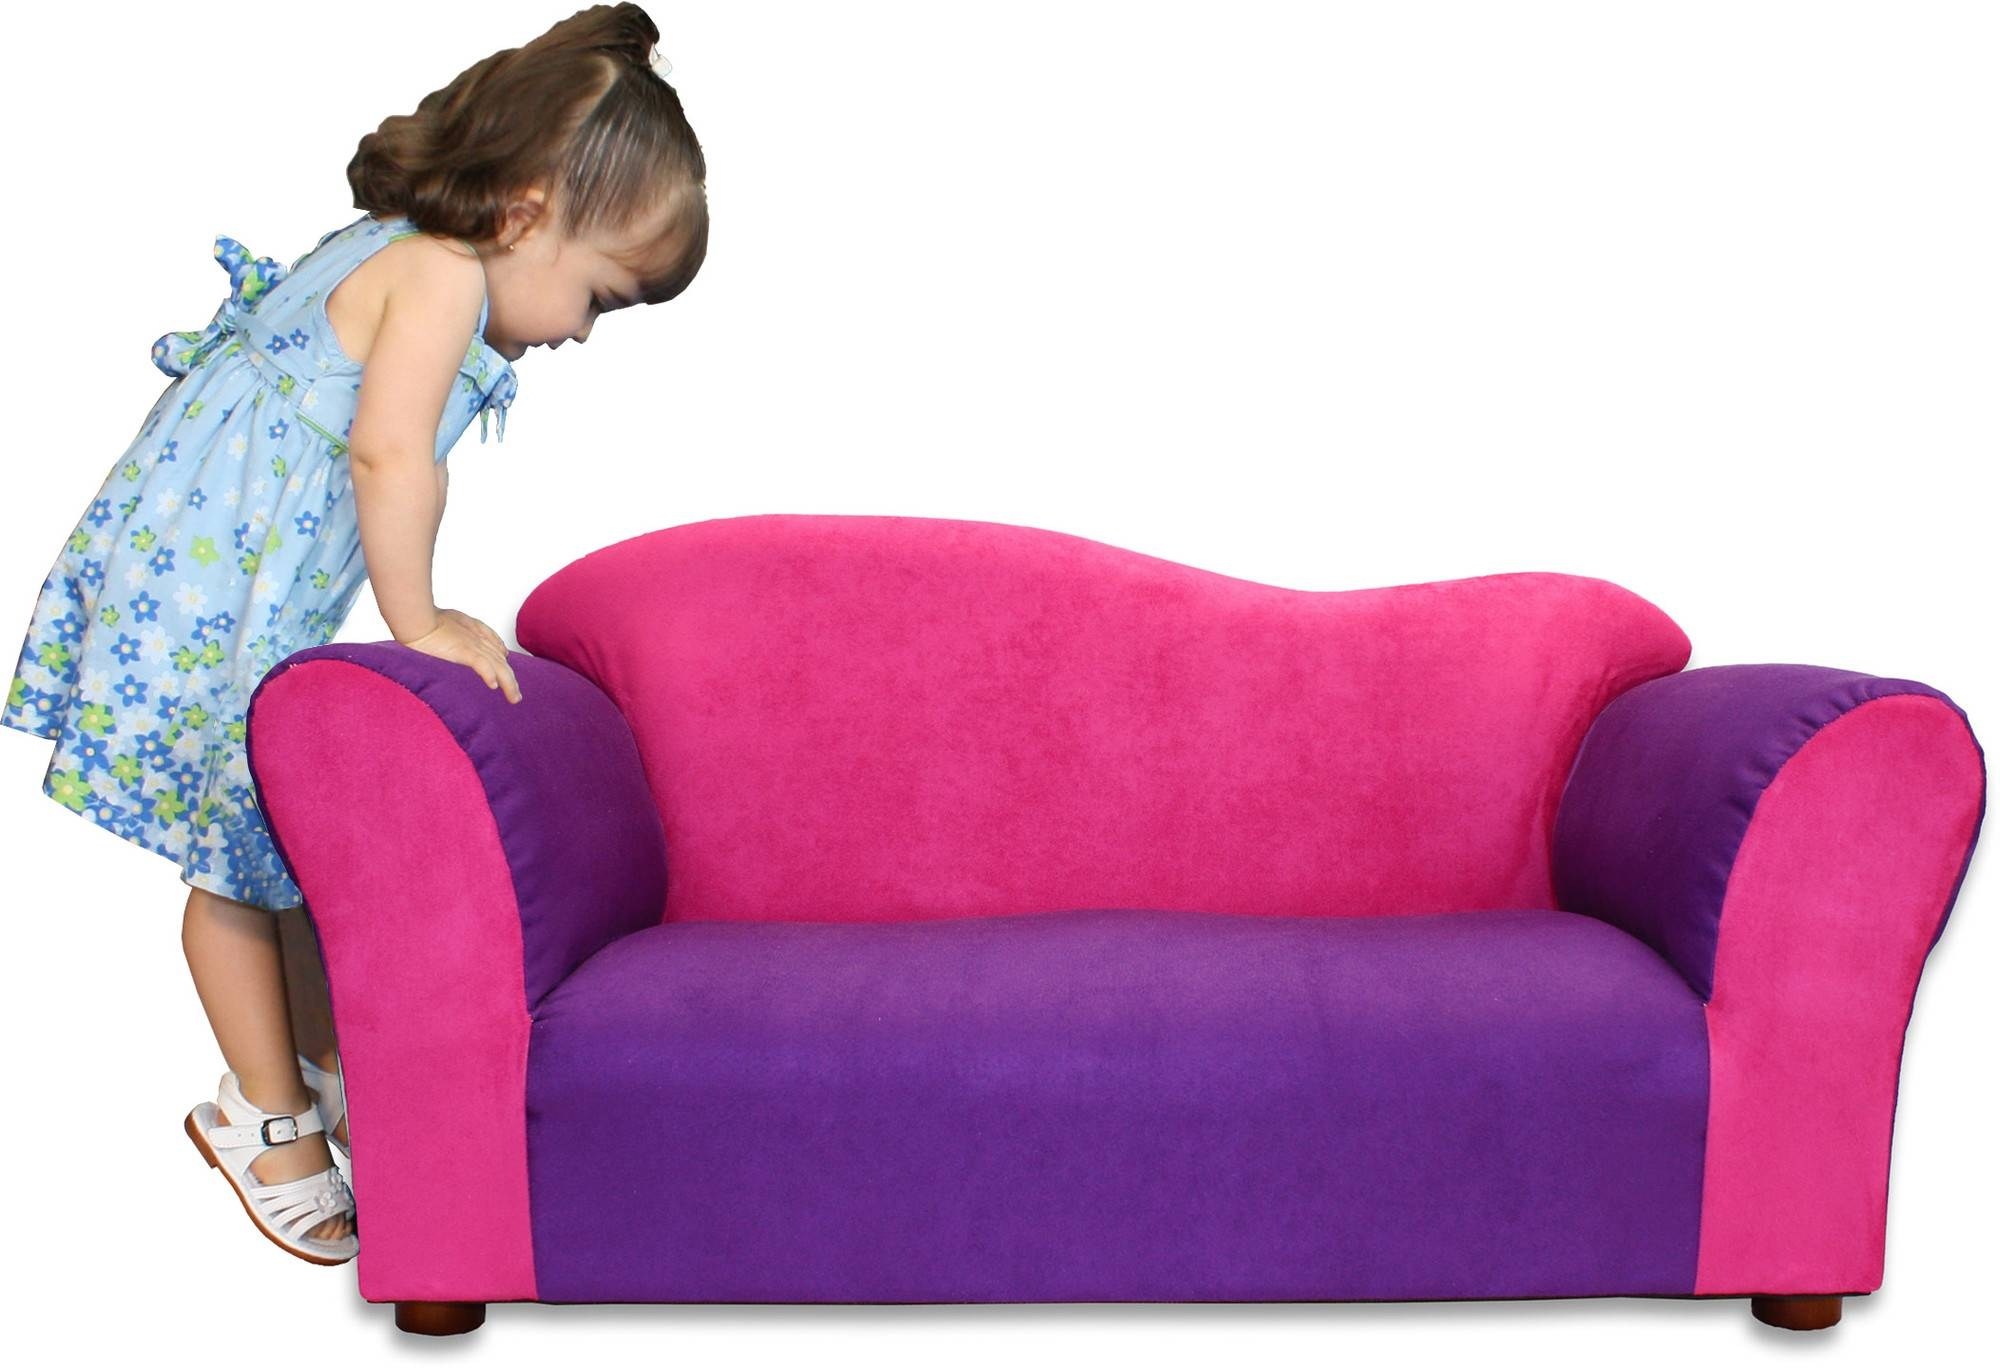 Sofas Center : Canada Children Sofa Chair Childrens Phenomenal throughout Children Sofa Chairs (Image 21 of 30)